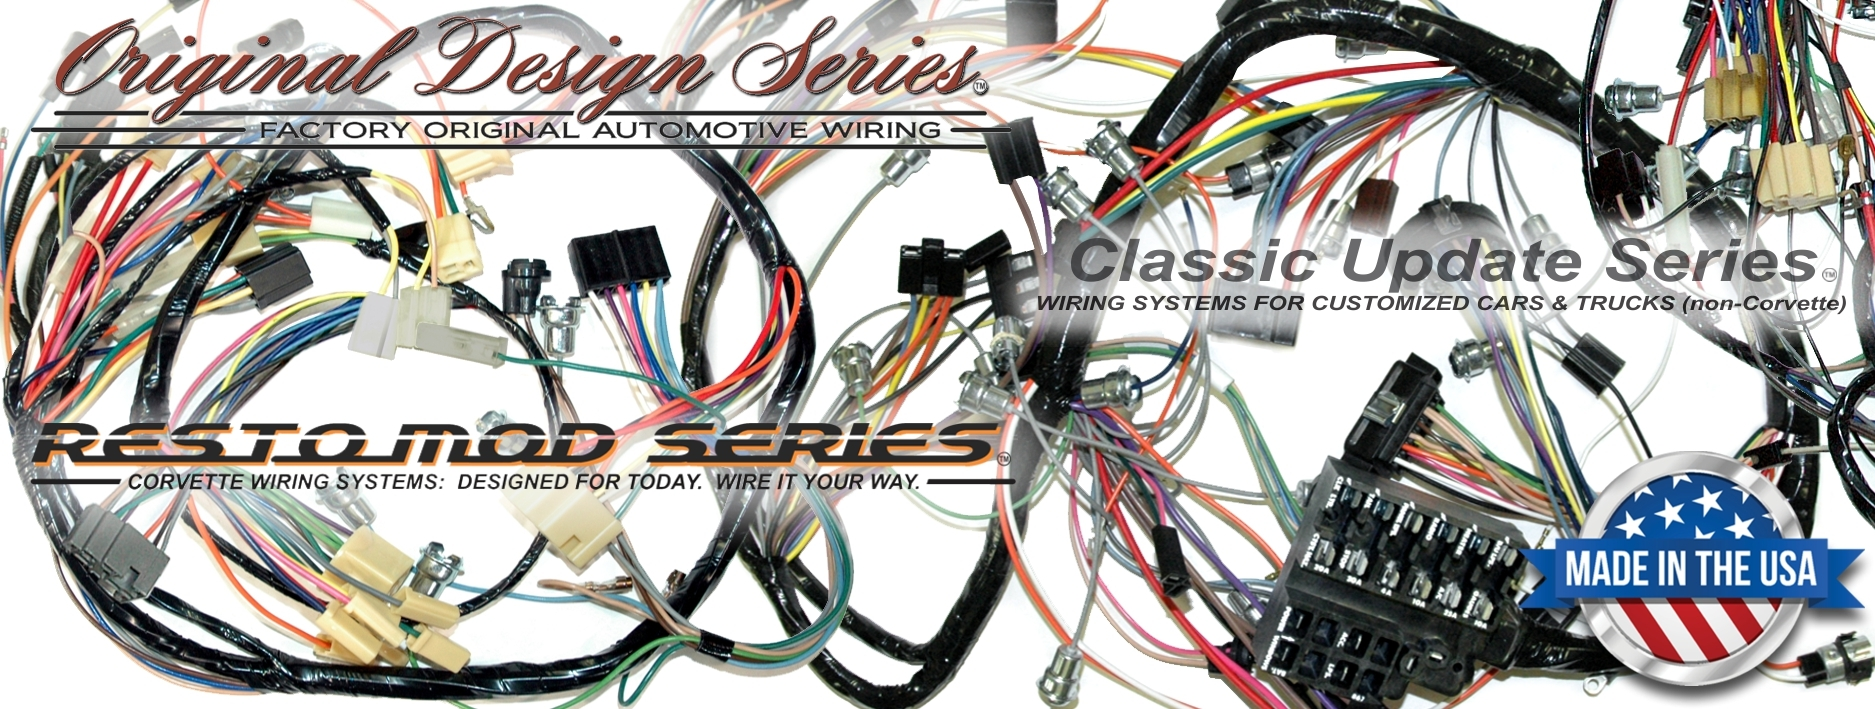 Automotive Wire Harness Manufacturers Usa - Wiring Diagrams on automotive voltage regulator, automotive mounting brackets, automotive alternator, automotive switch, automotive bumpers, automotive coil, automotive wheels, automotive headlights, automotive computer, cable harness, wire harness, automotive starter, automotive transmission, automotive electrical, car harness, automotive brakes, automotive ecu, automotive gaskets, automotive vacuum pump, automotive hoses,